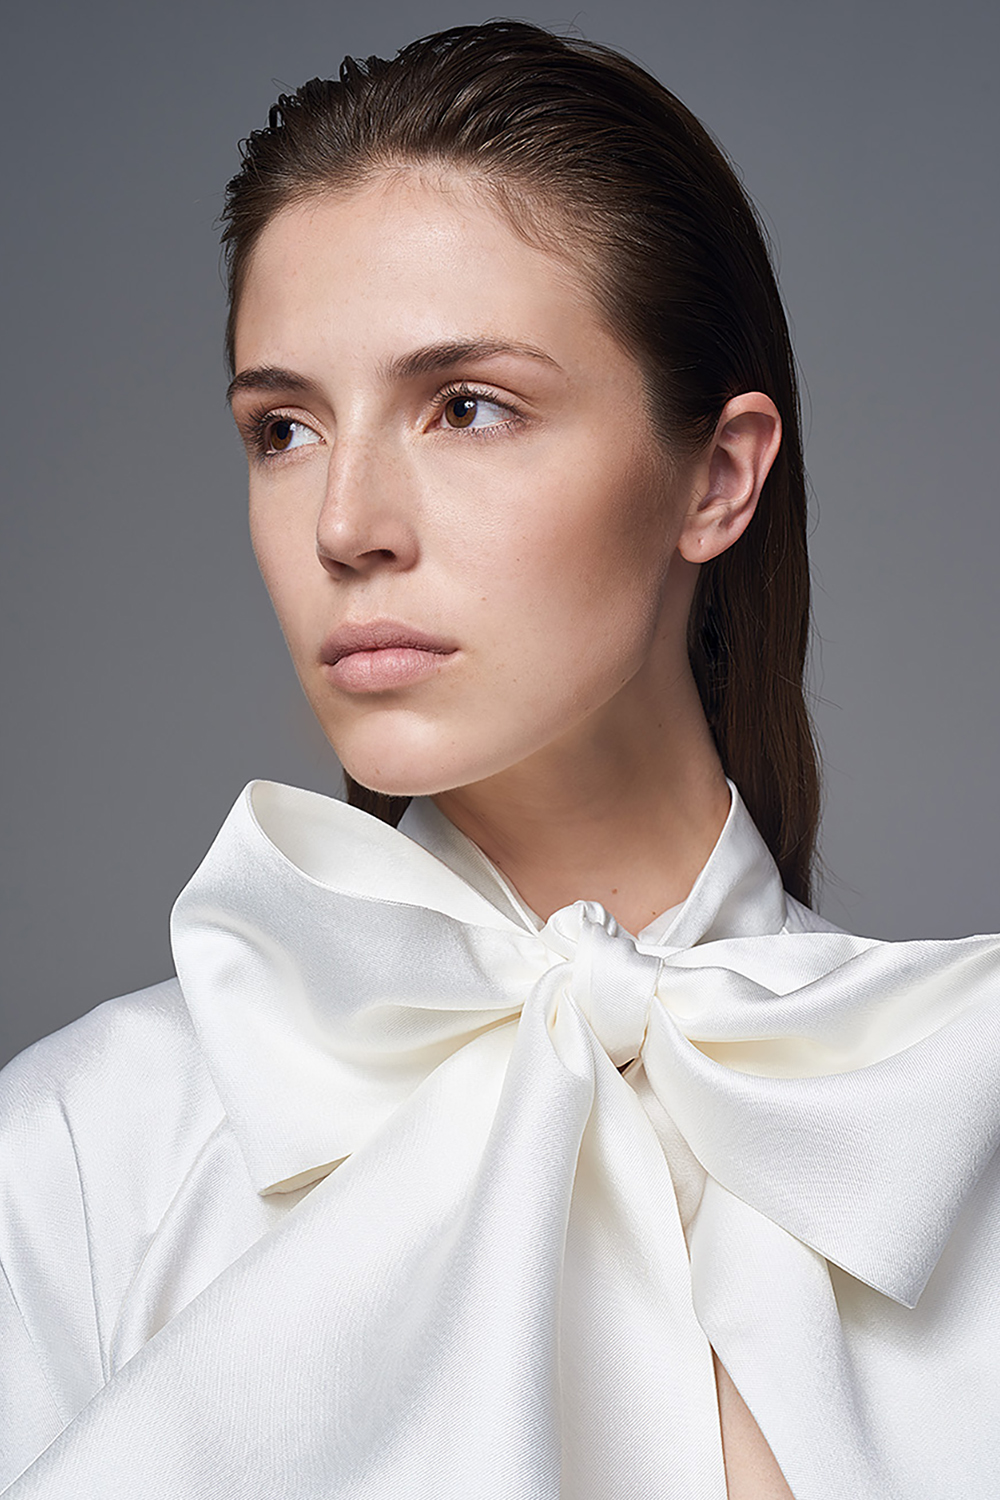 THE BOW JACKET WITH THE ALEXA MIKARDO SKIRT TWO PIECE BRIDAL WEDDING DRESS BY HALFPENNY LONDON